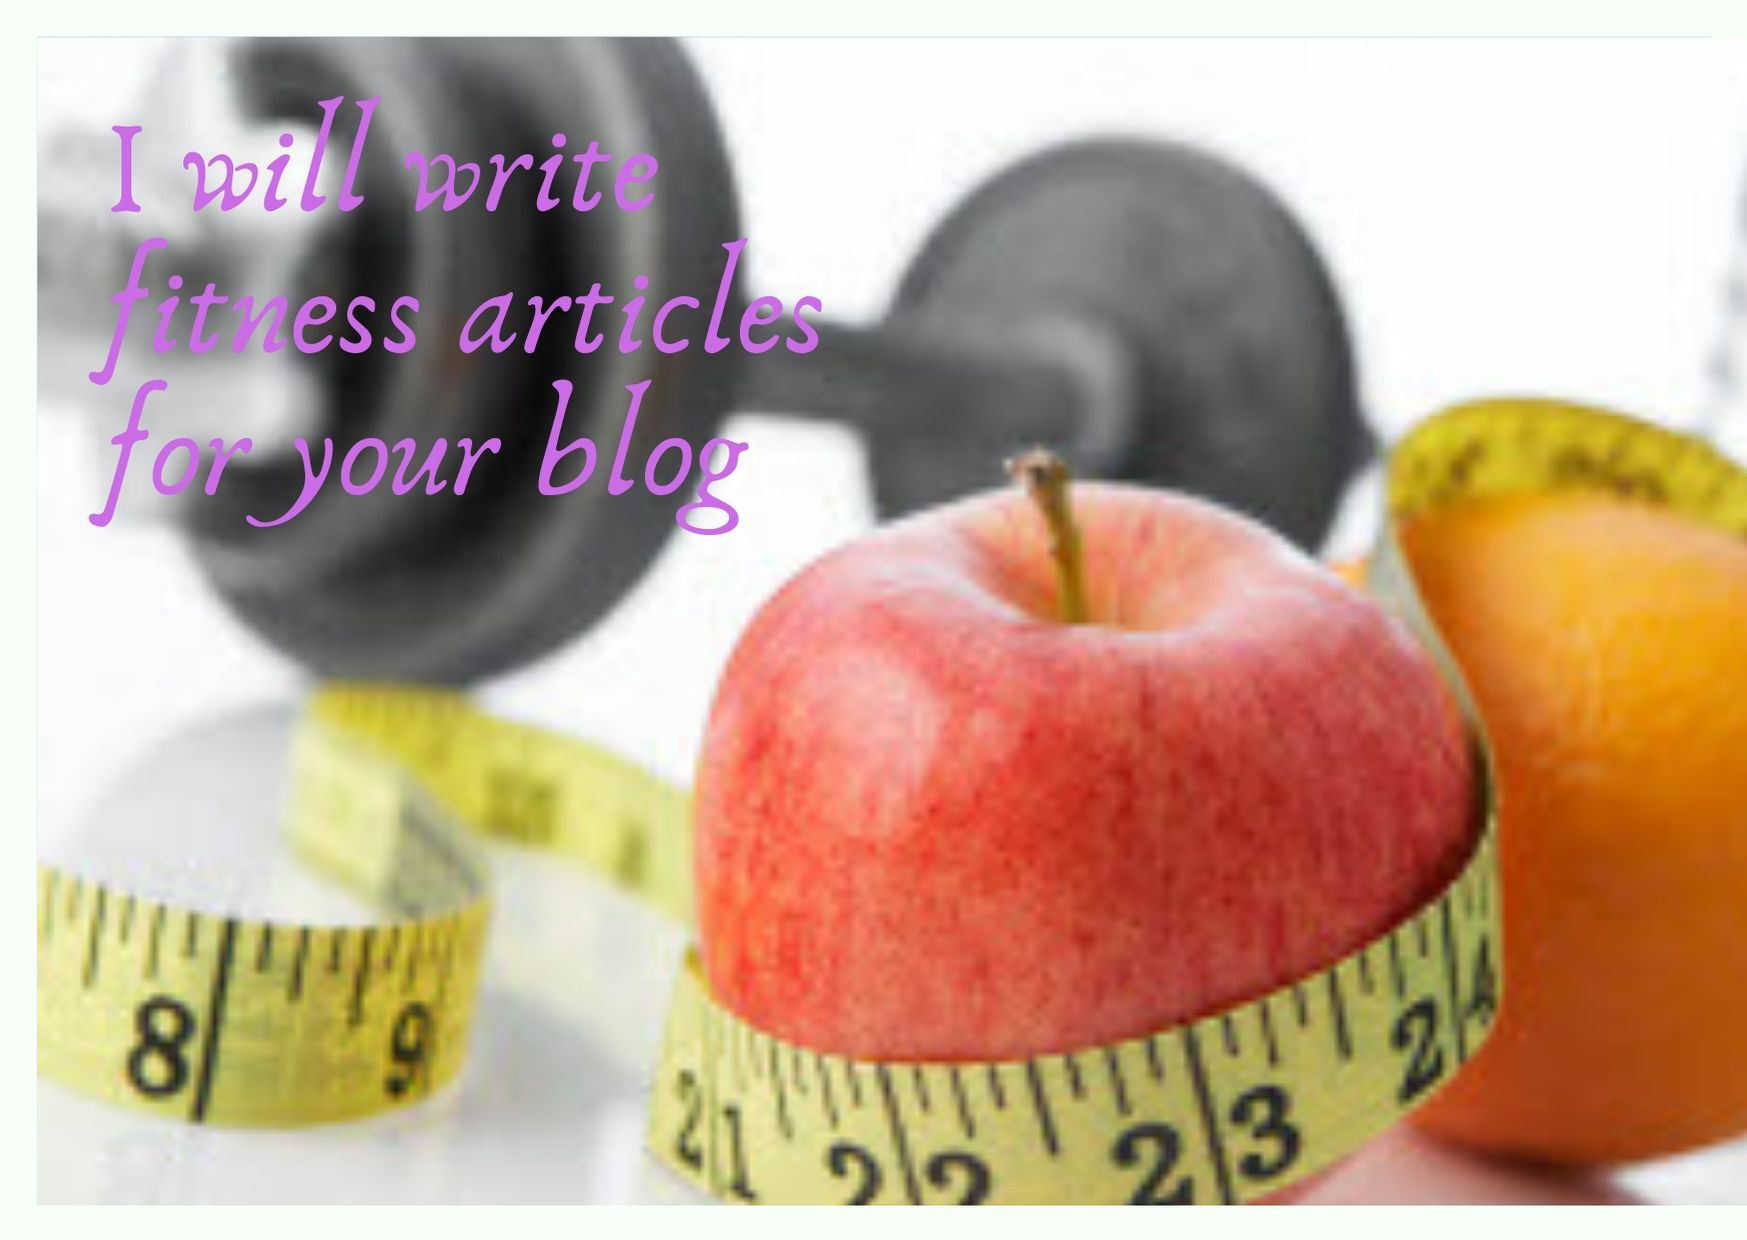 I will write fitness articles for your blog